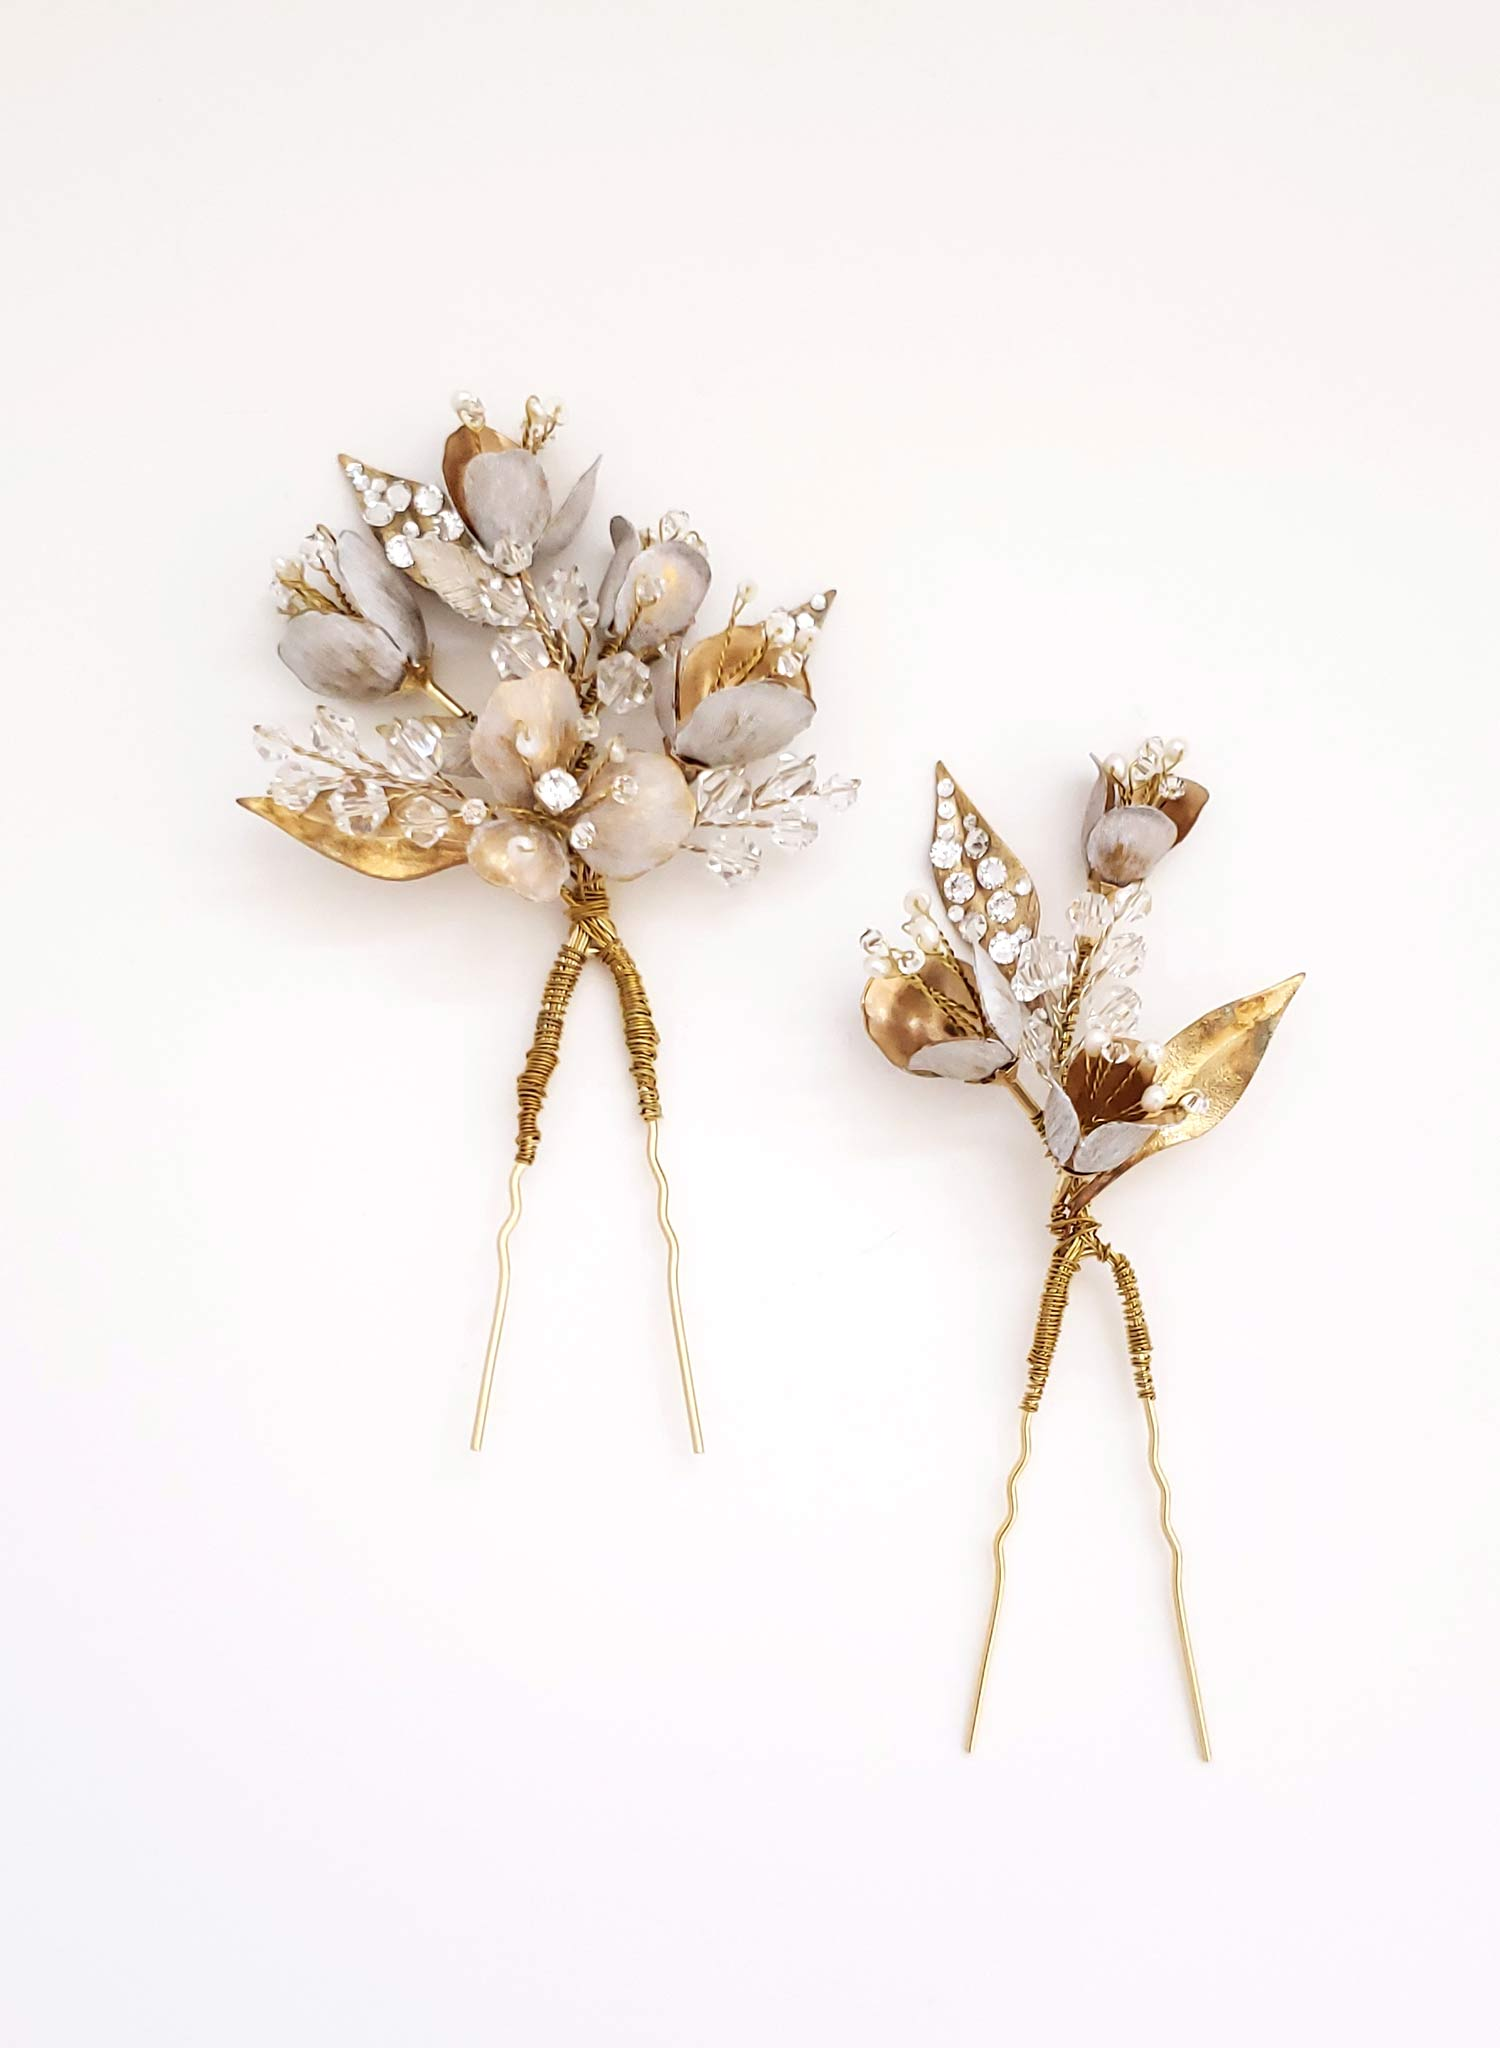 Antique blossom and bud hair pin set of 2 - Style #933